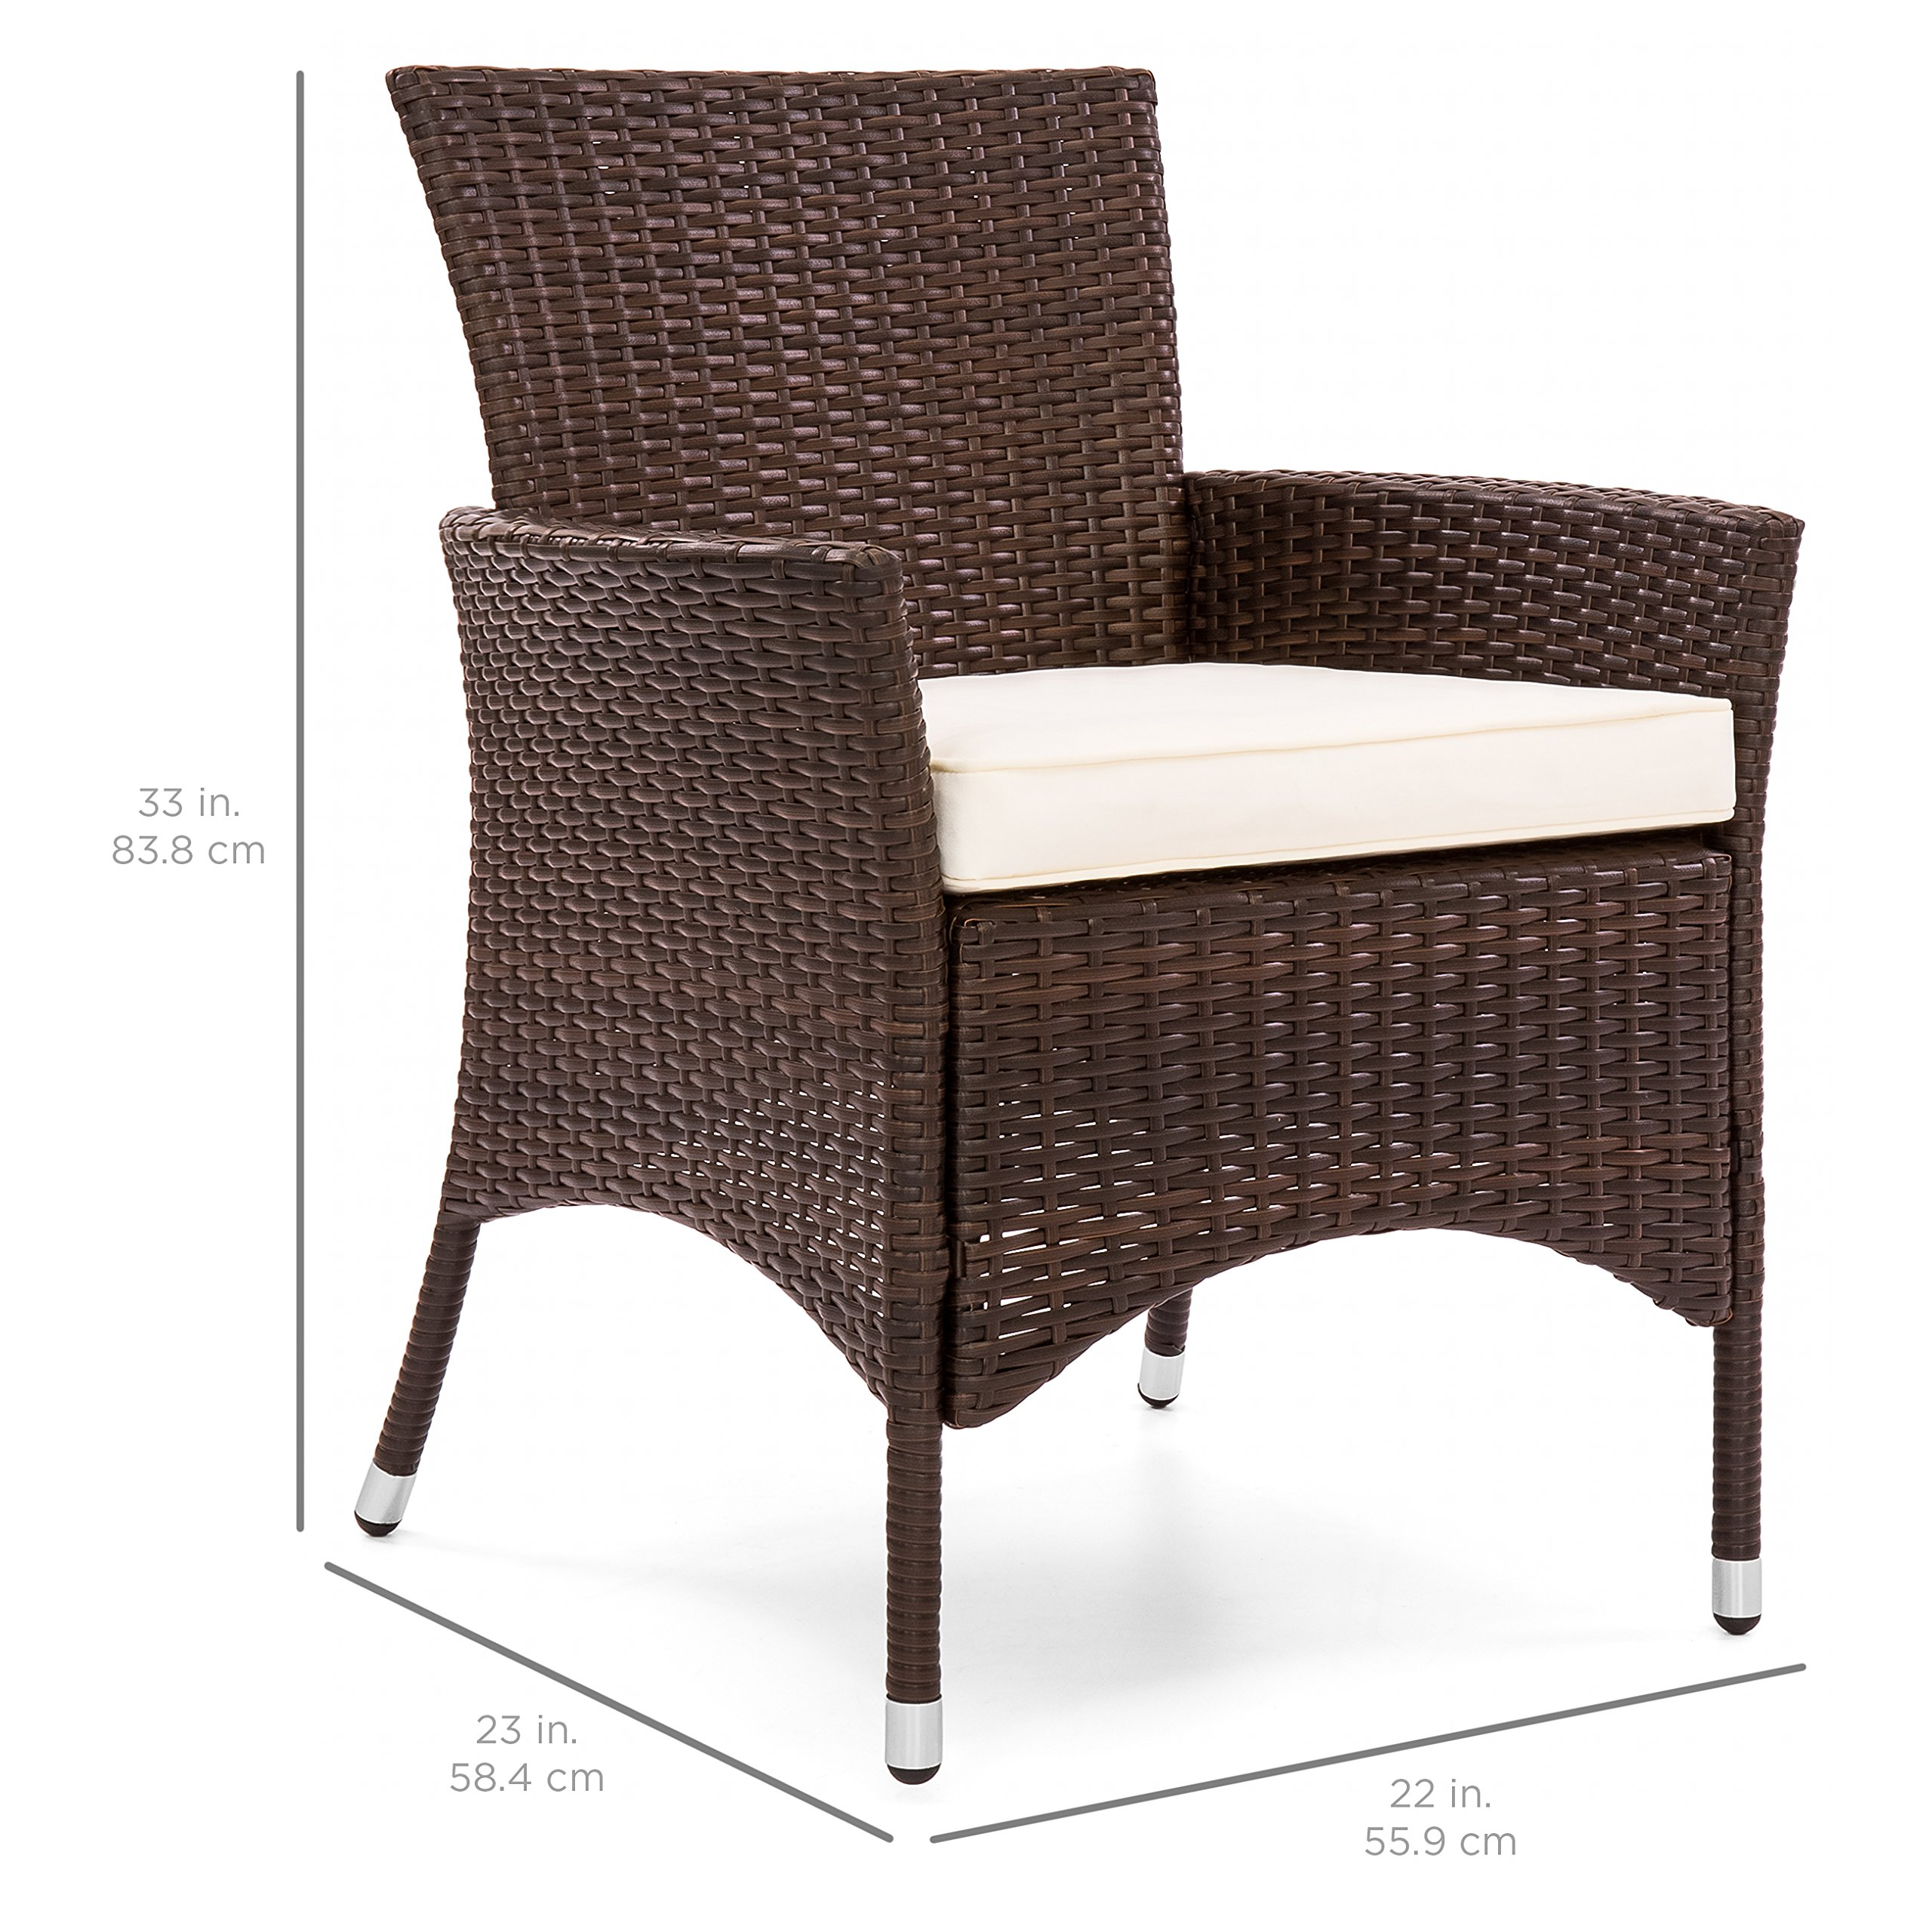 Best Choice Products Set of 2 Modern Contemporary Wicker Patio Dining Chairs w/Water Resistant Cushion - Brown by Best Choice Products (Image #6)